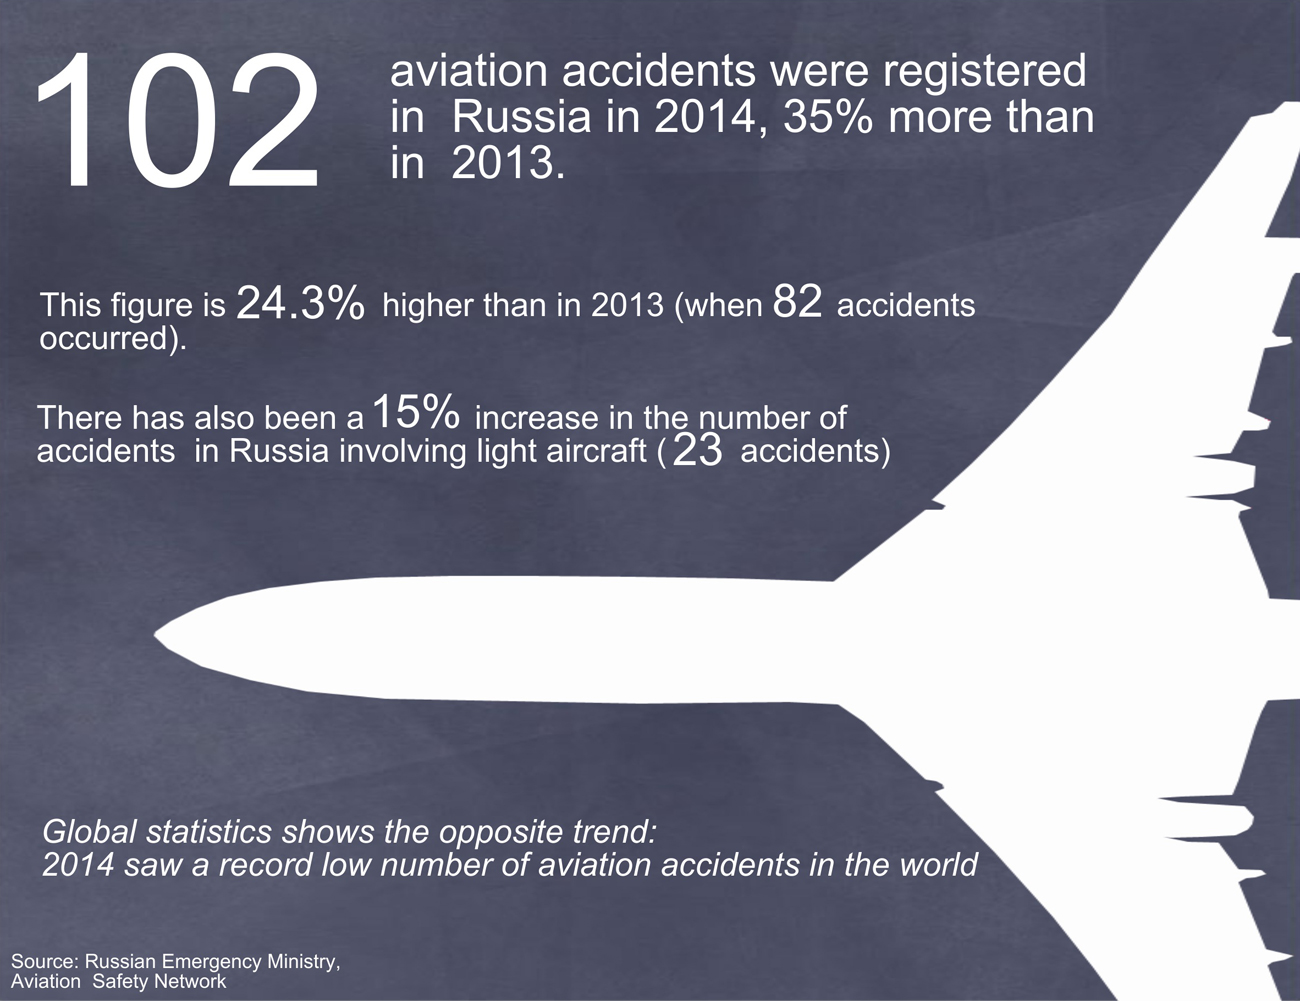 Russia's skies became 24% less safe in 2014 than in the previous year